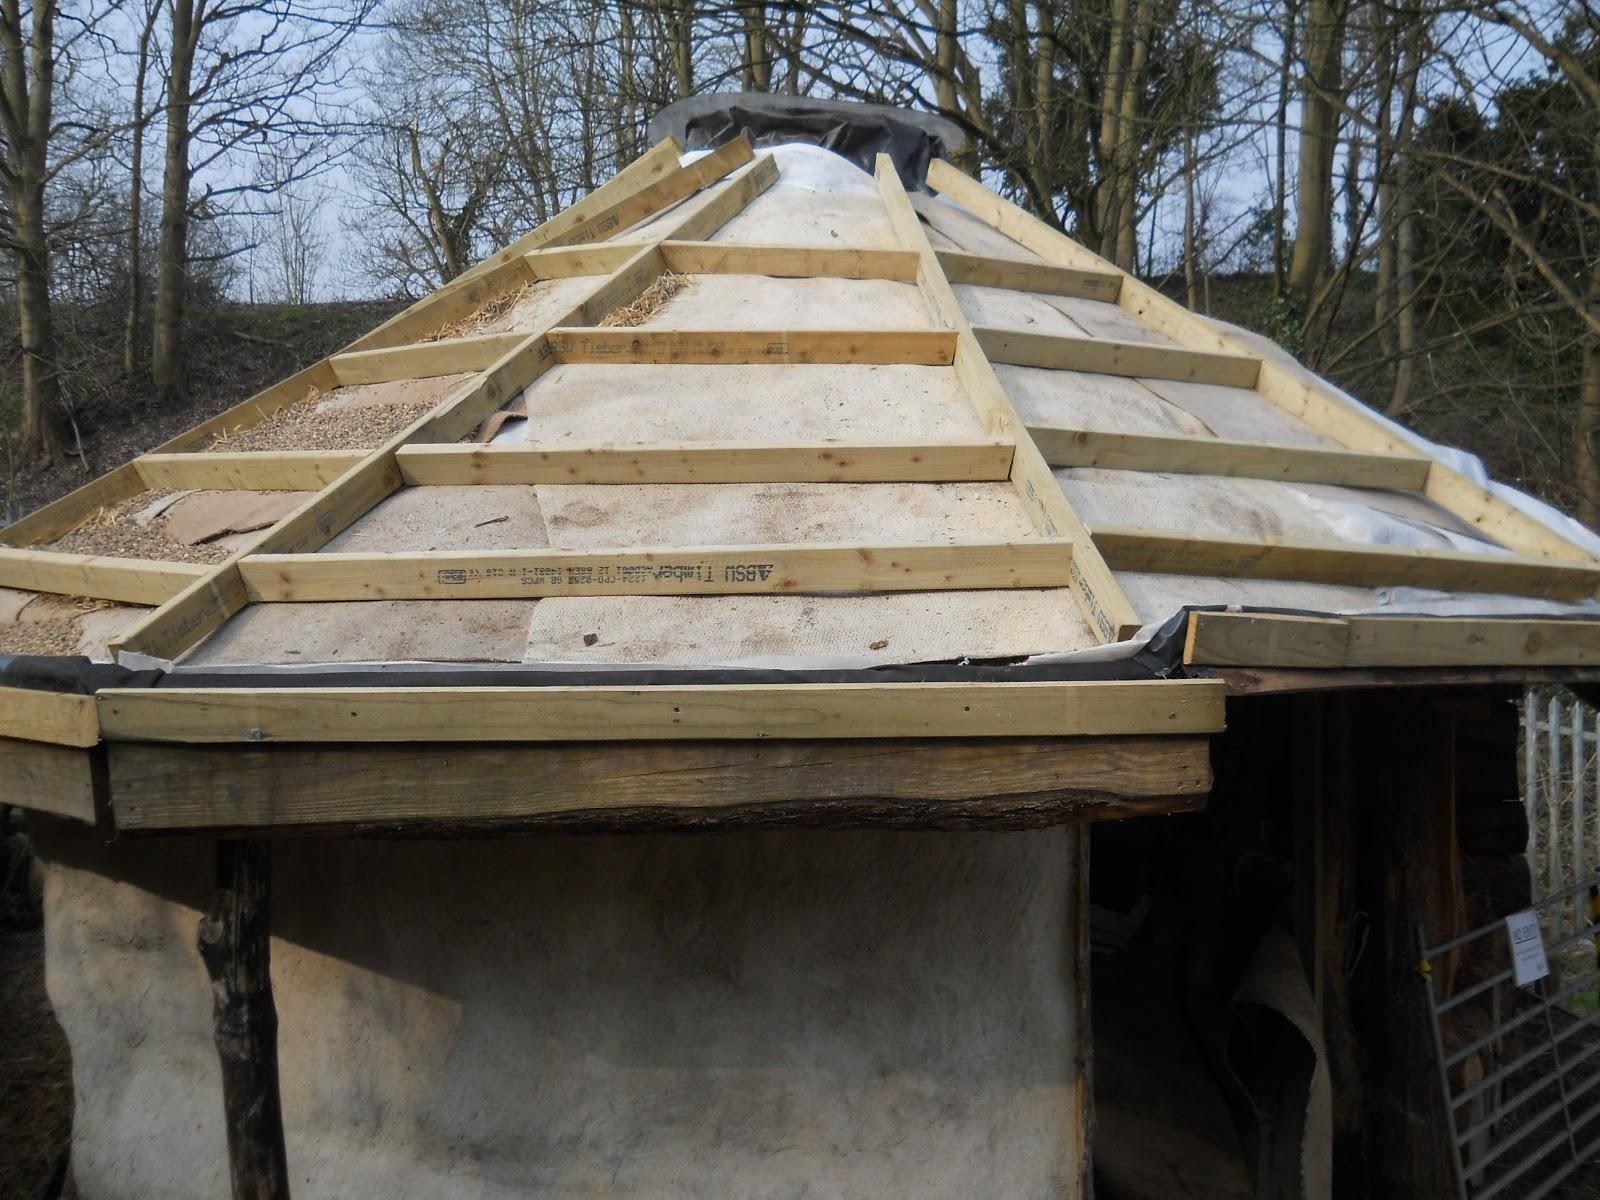 Fixing The Reciprocal Roof On The Boiling Wells Roundhouse